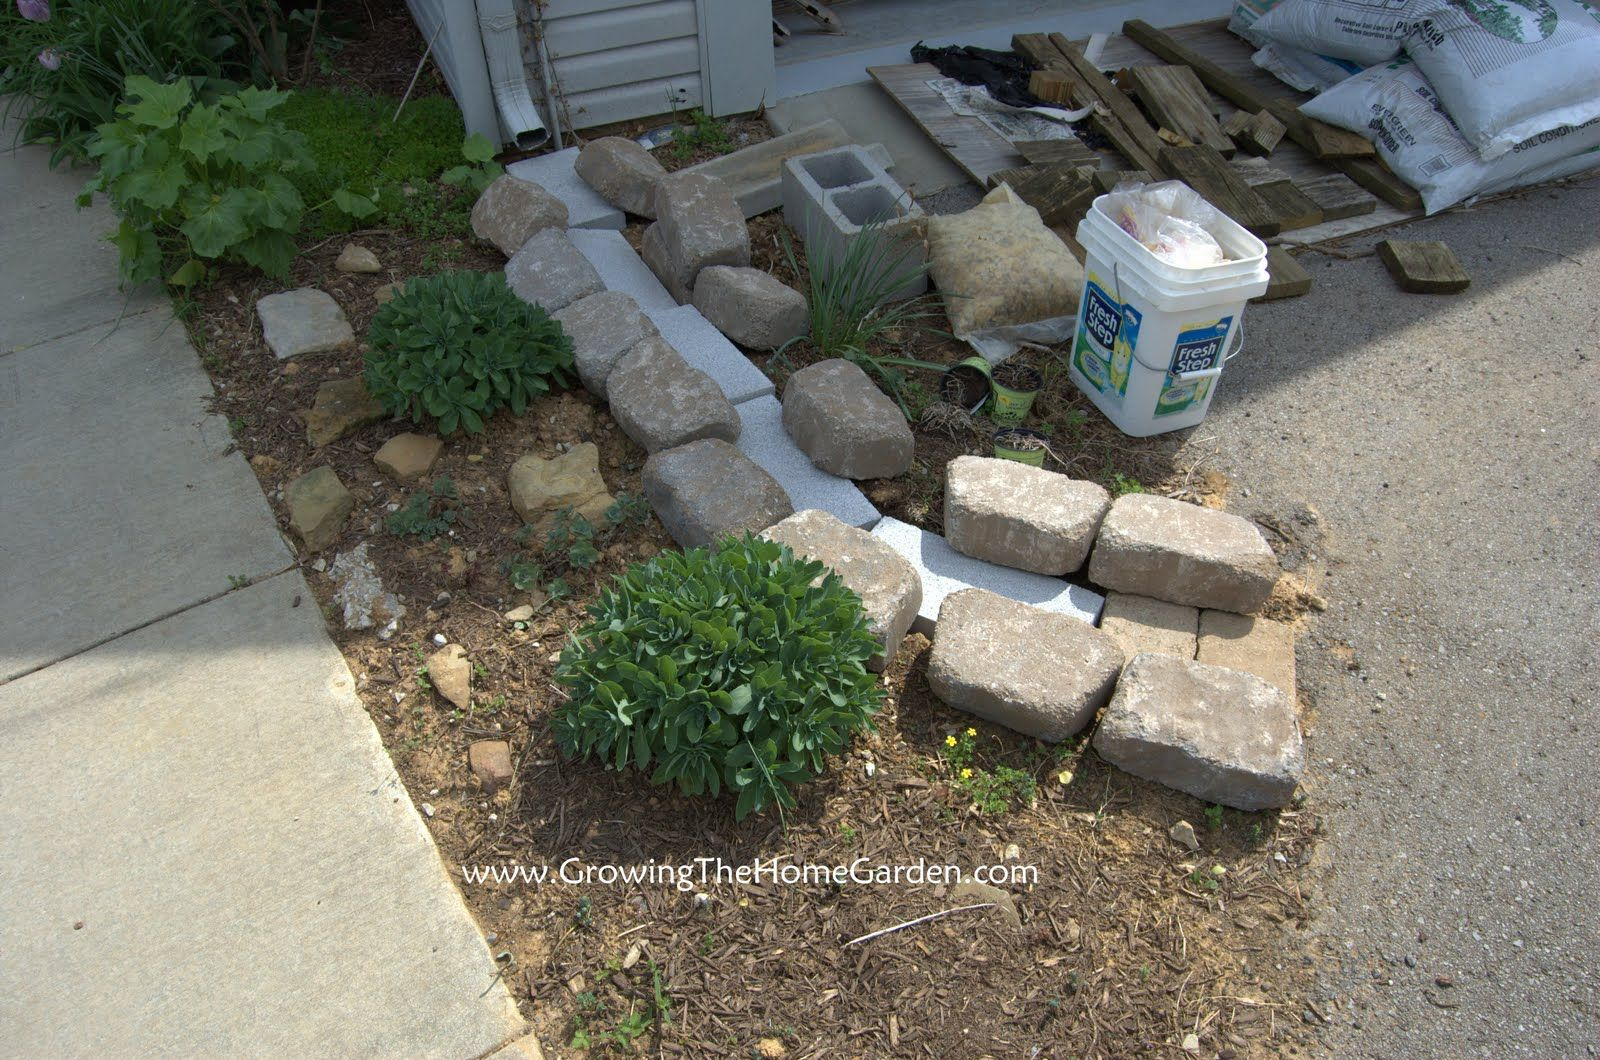 In home garden ideas  Making A Dry Creek Bed Drainage Canal for Downspouts  Growing The